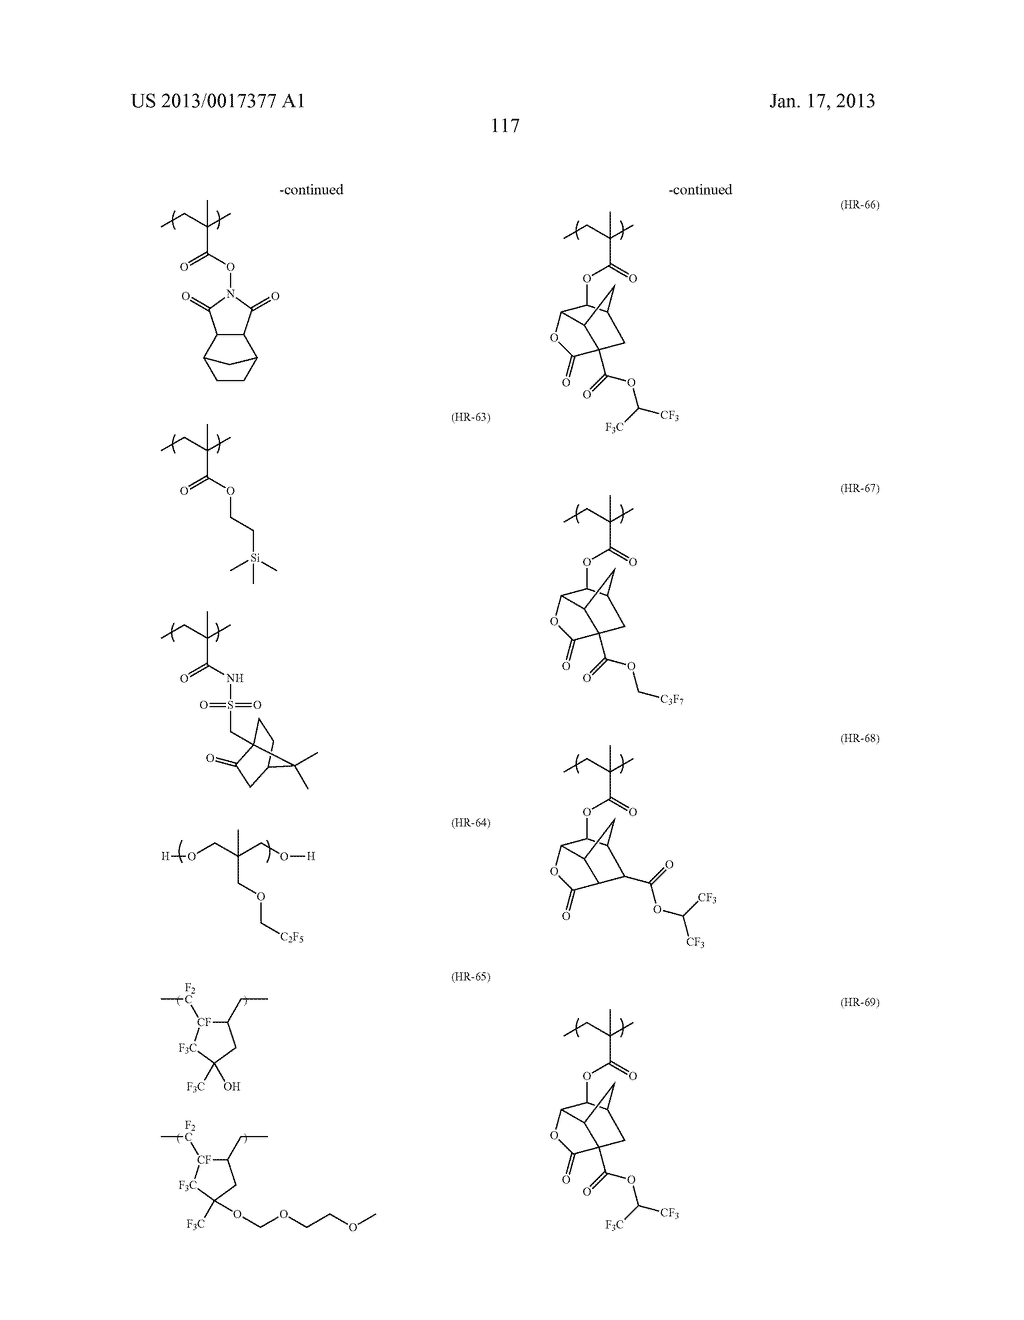 ACTINIC-RAY- OR RADIATION-SENSITIVE RESIN COMPOSITION AND METHOD OF     FORMING PATTERN USING THE SAMEAANM Kataoka; ShoheiAACI ShizuokaAACO JPAAGP Kataoka; Shohei Shizuoka JPAANM Iwato; KaoruAACI ShizuokaAACO JPAAGP Iwato; Kaoru Shizuoka JPAANM Kamimura; SouAACI ShizuokaAACO JPAAGP Kamimura; Sou Shizuoka JPAANM Tsuchihashi; ToruAACI ShizuokaAACO JPAAGP Tsuchihashi; Toru Shizuoka JPAANM Enomoto; YuichiroAACI ShizuokaAACO JPAAGP Enomoto; Yuichiro Shizuoka JPAANM Fujii; KanaAACI ShizuokaAACO JPAAGP Fujii; Kana Shizuoka JPAANM Mizutani; KazuyoshiAACI ShizuokaAACO JPAAGP Mizutani; Kazuyoshi Shizuoka JPAANM Tarutani; ShinjiAACI ShizuokaAACO JPAAGP Tarutani; Shinji Shizuoka JPAANM Kato; KeitaAACI ShizuokaAACO JPAAGP Kato; Keita Shizuoka JP - diagram, schematic, and image 118